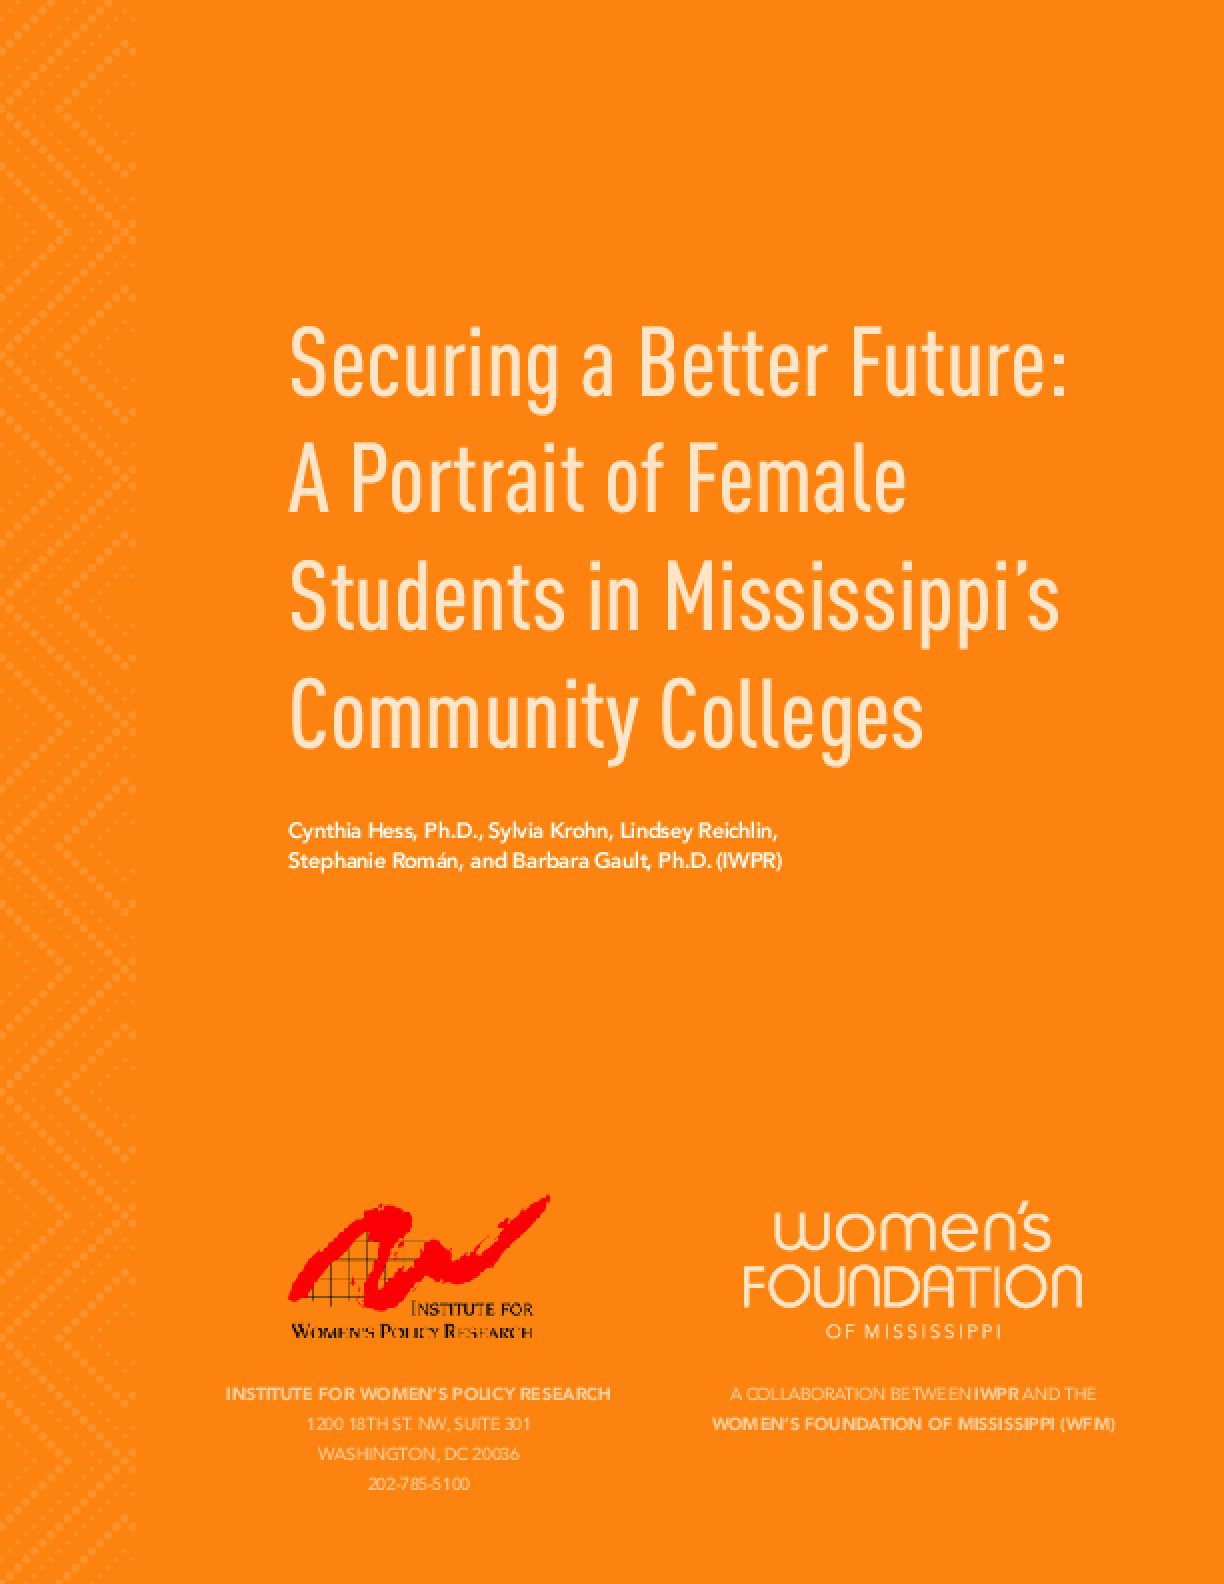 Securing a Better Future: A Potrait of Female Students in Mississippi's Community Colleges